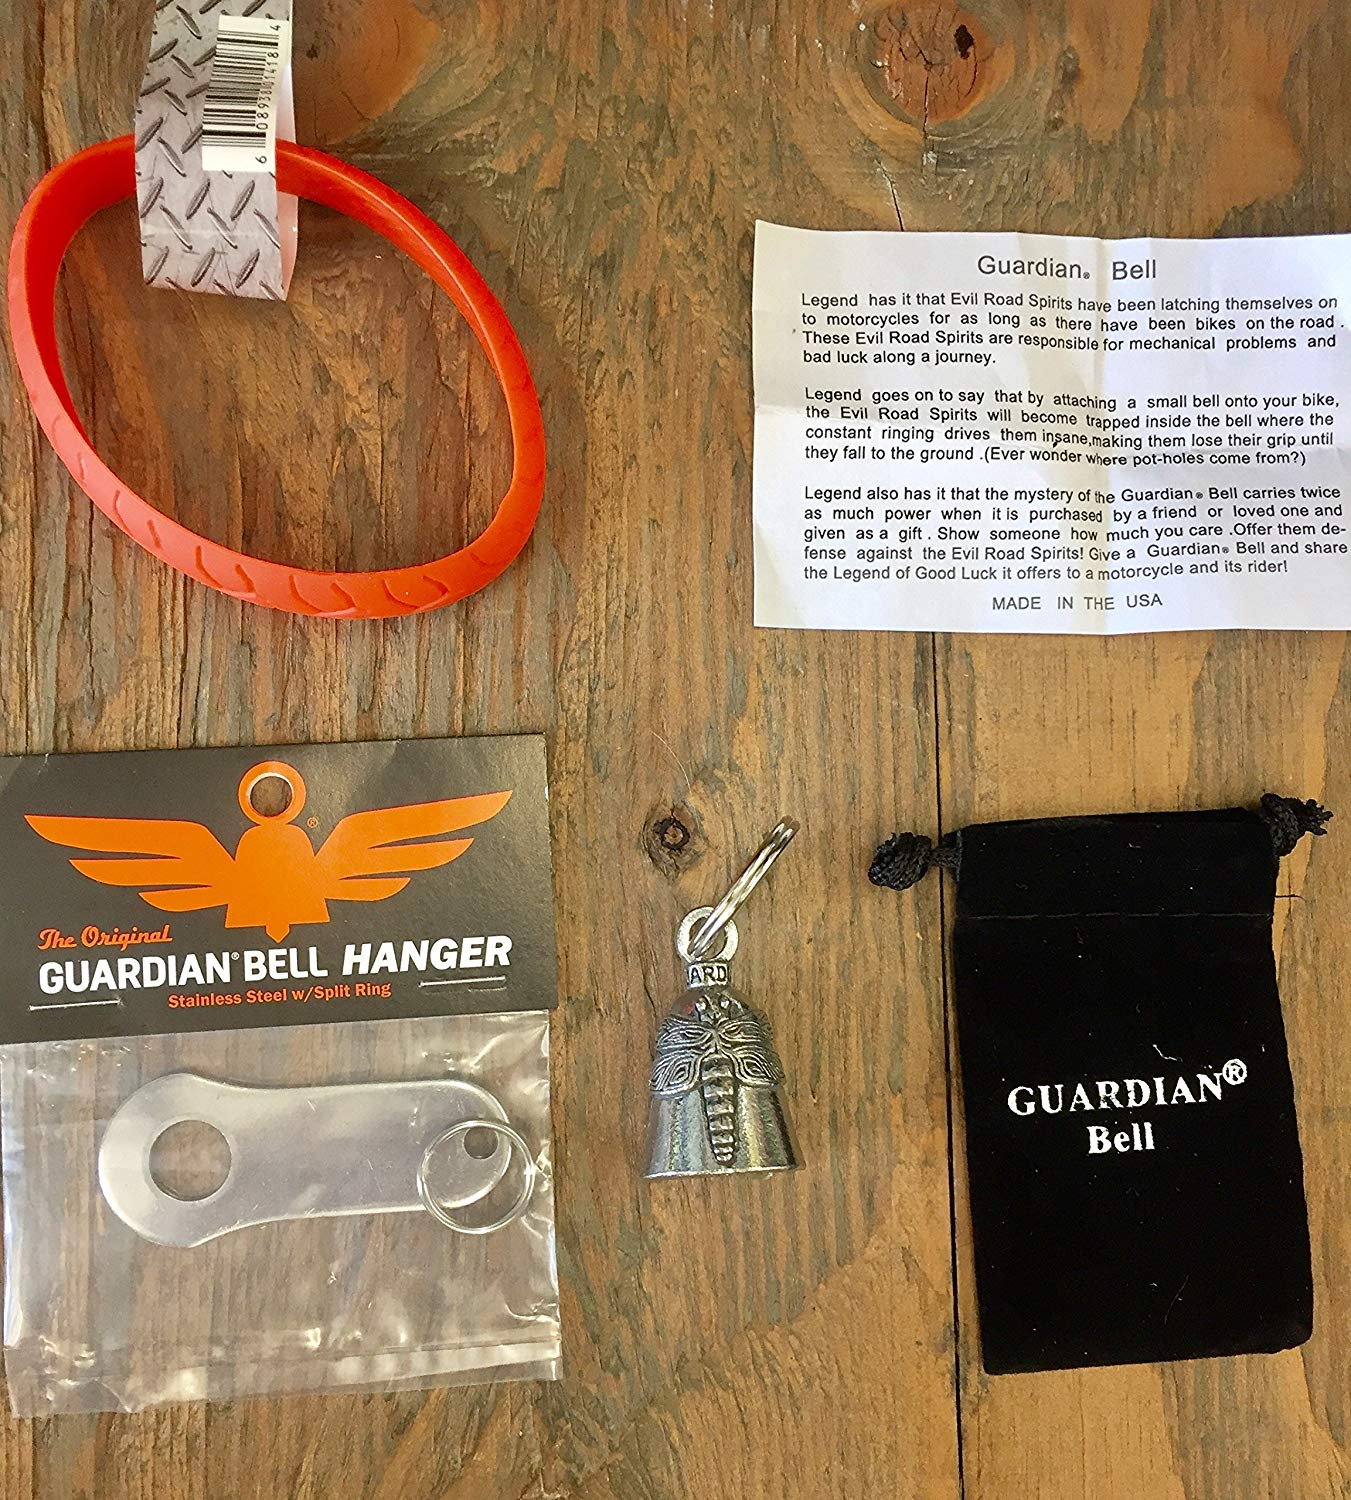 Guardian® Bell DRAGON FLY COMPLETE MOTORCYCLE KIT W/HANGER & WRISTBAND